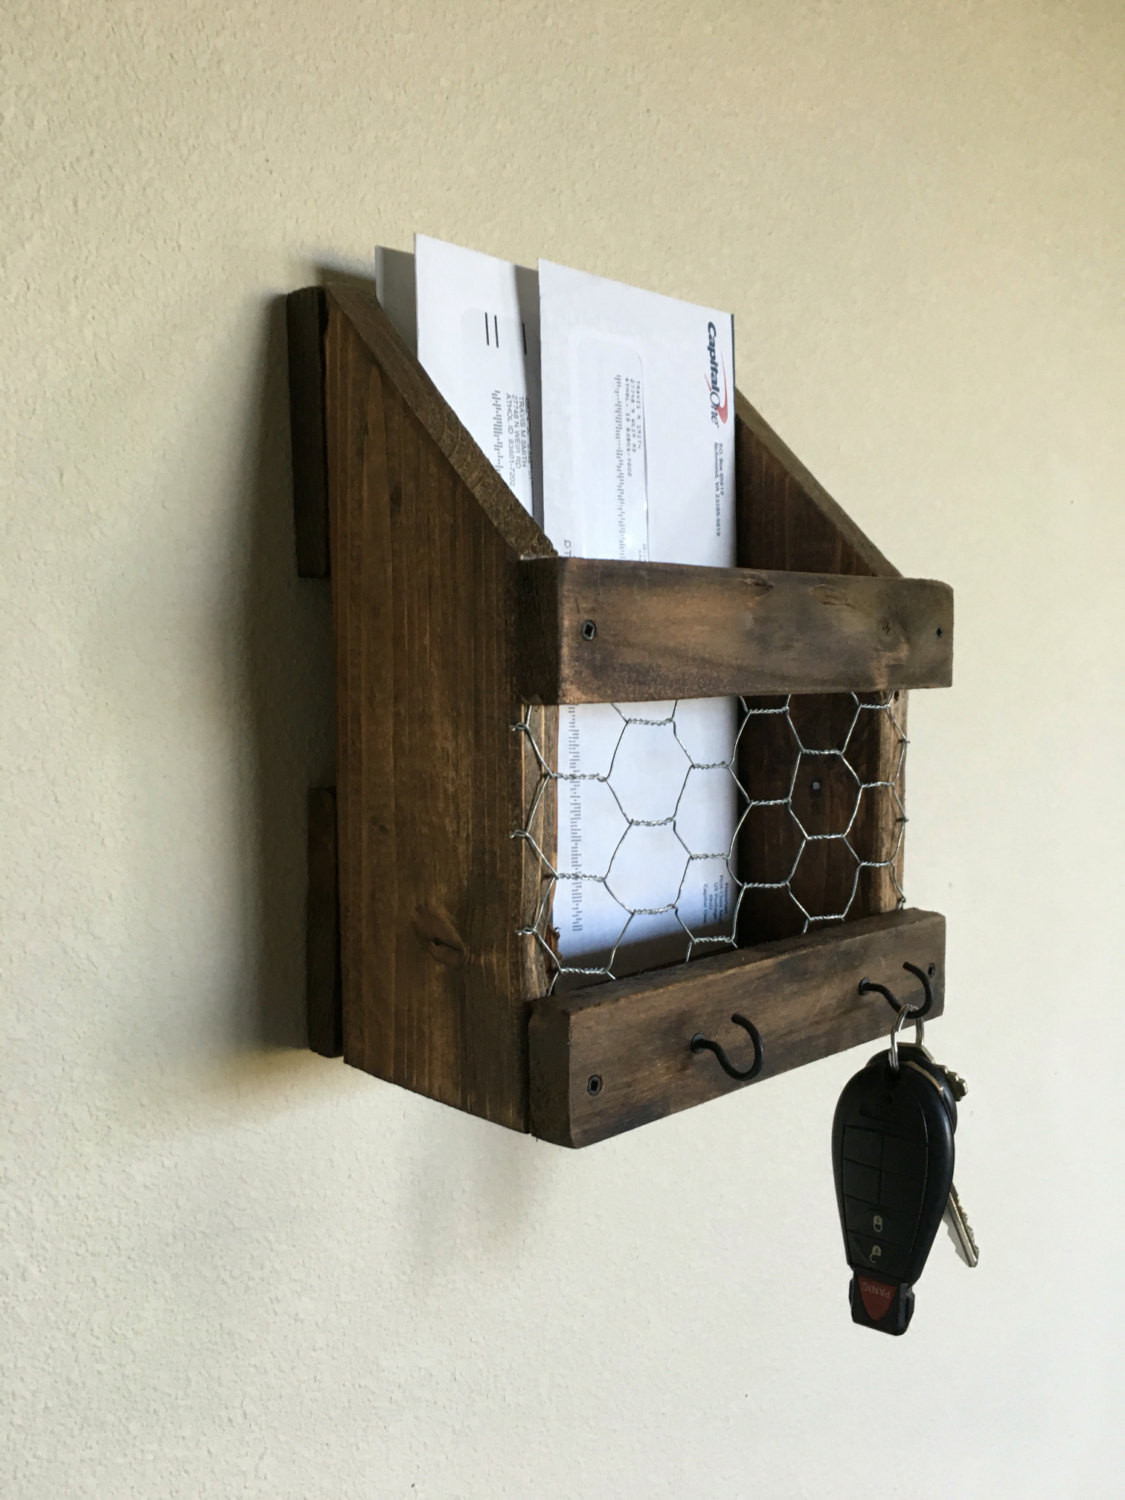 Best ideas about DIY Wall Mail Organizer . Save or Pin DIY Wood Wall Mail Organizer With Key Hooks Now.